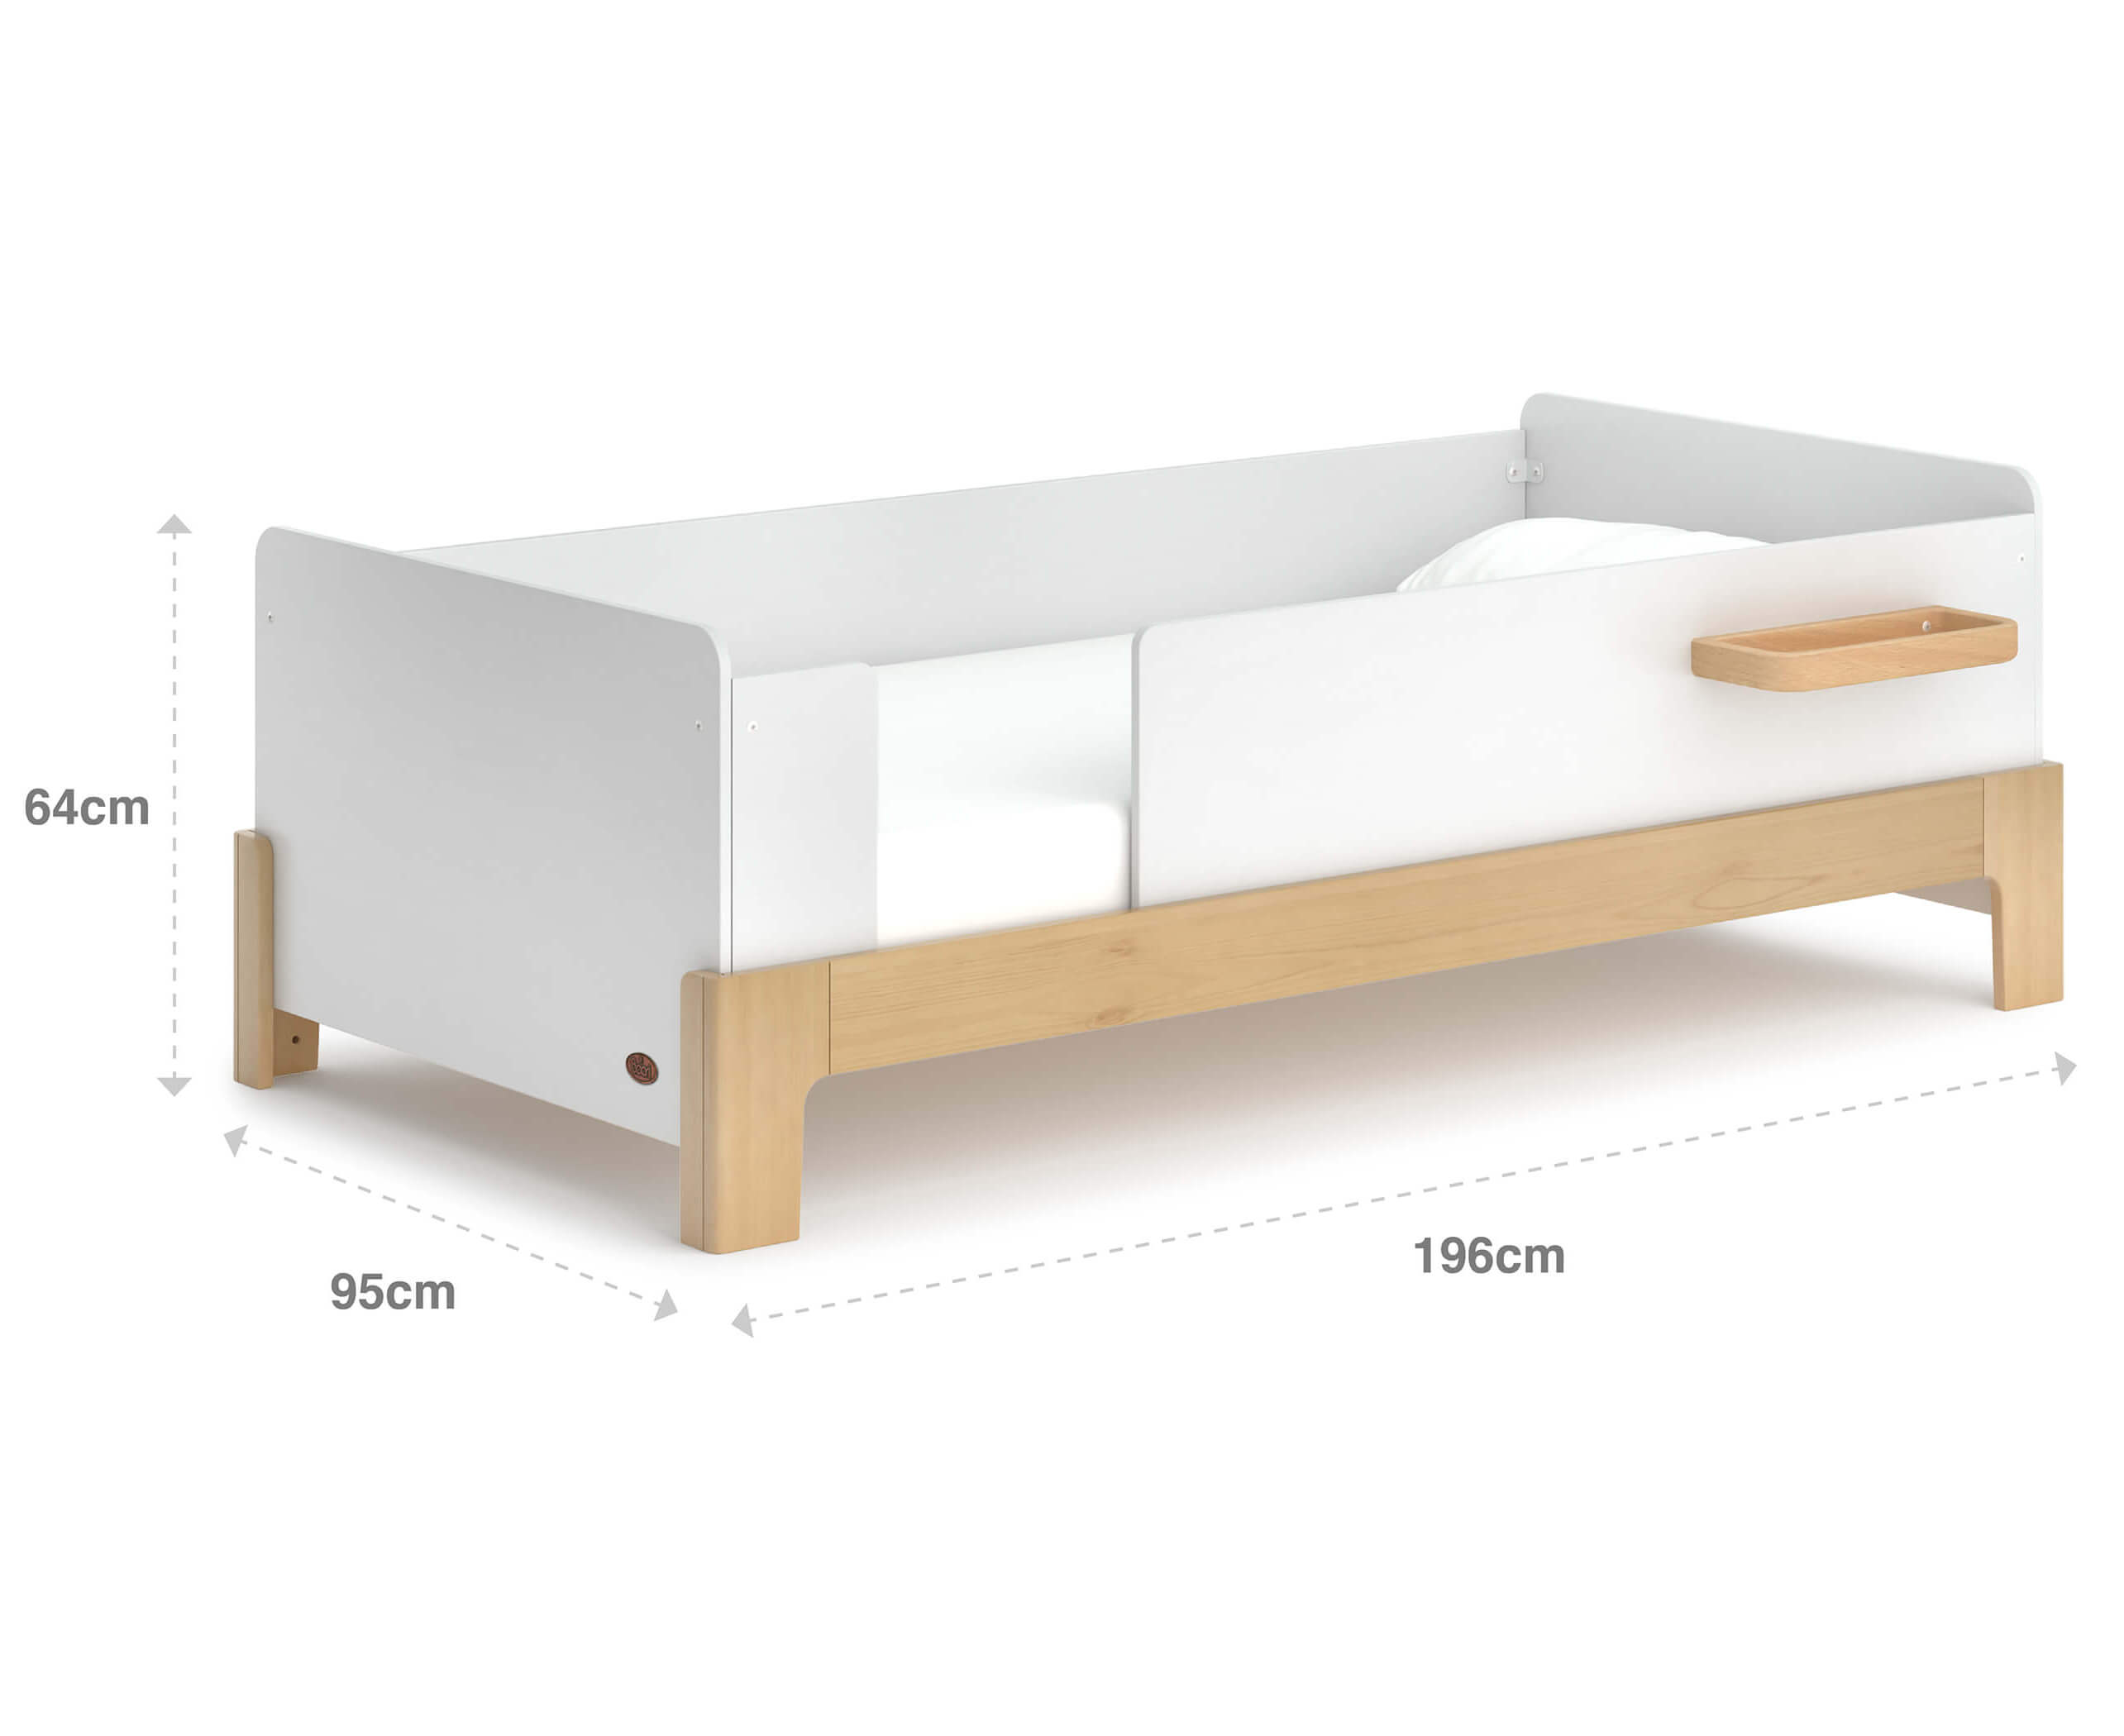 Product_Dimension_Images_Beds_June_2021-010_1